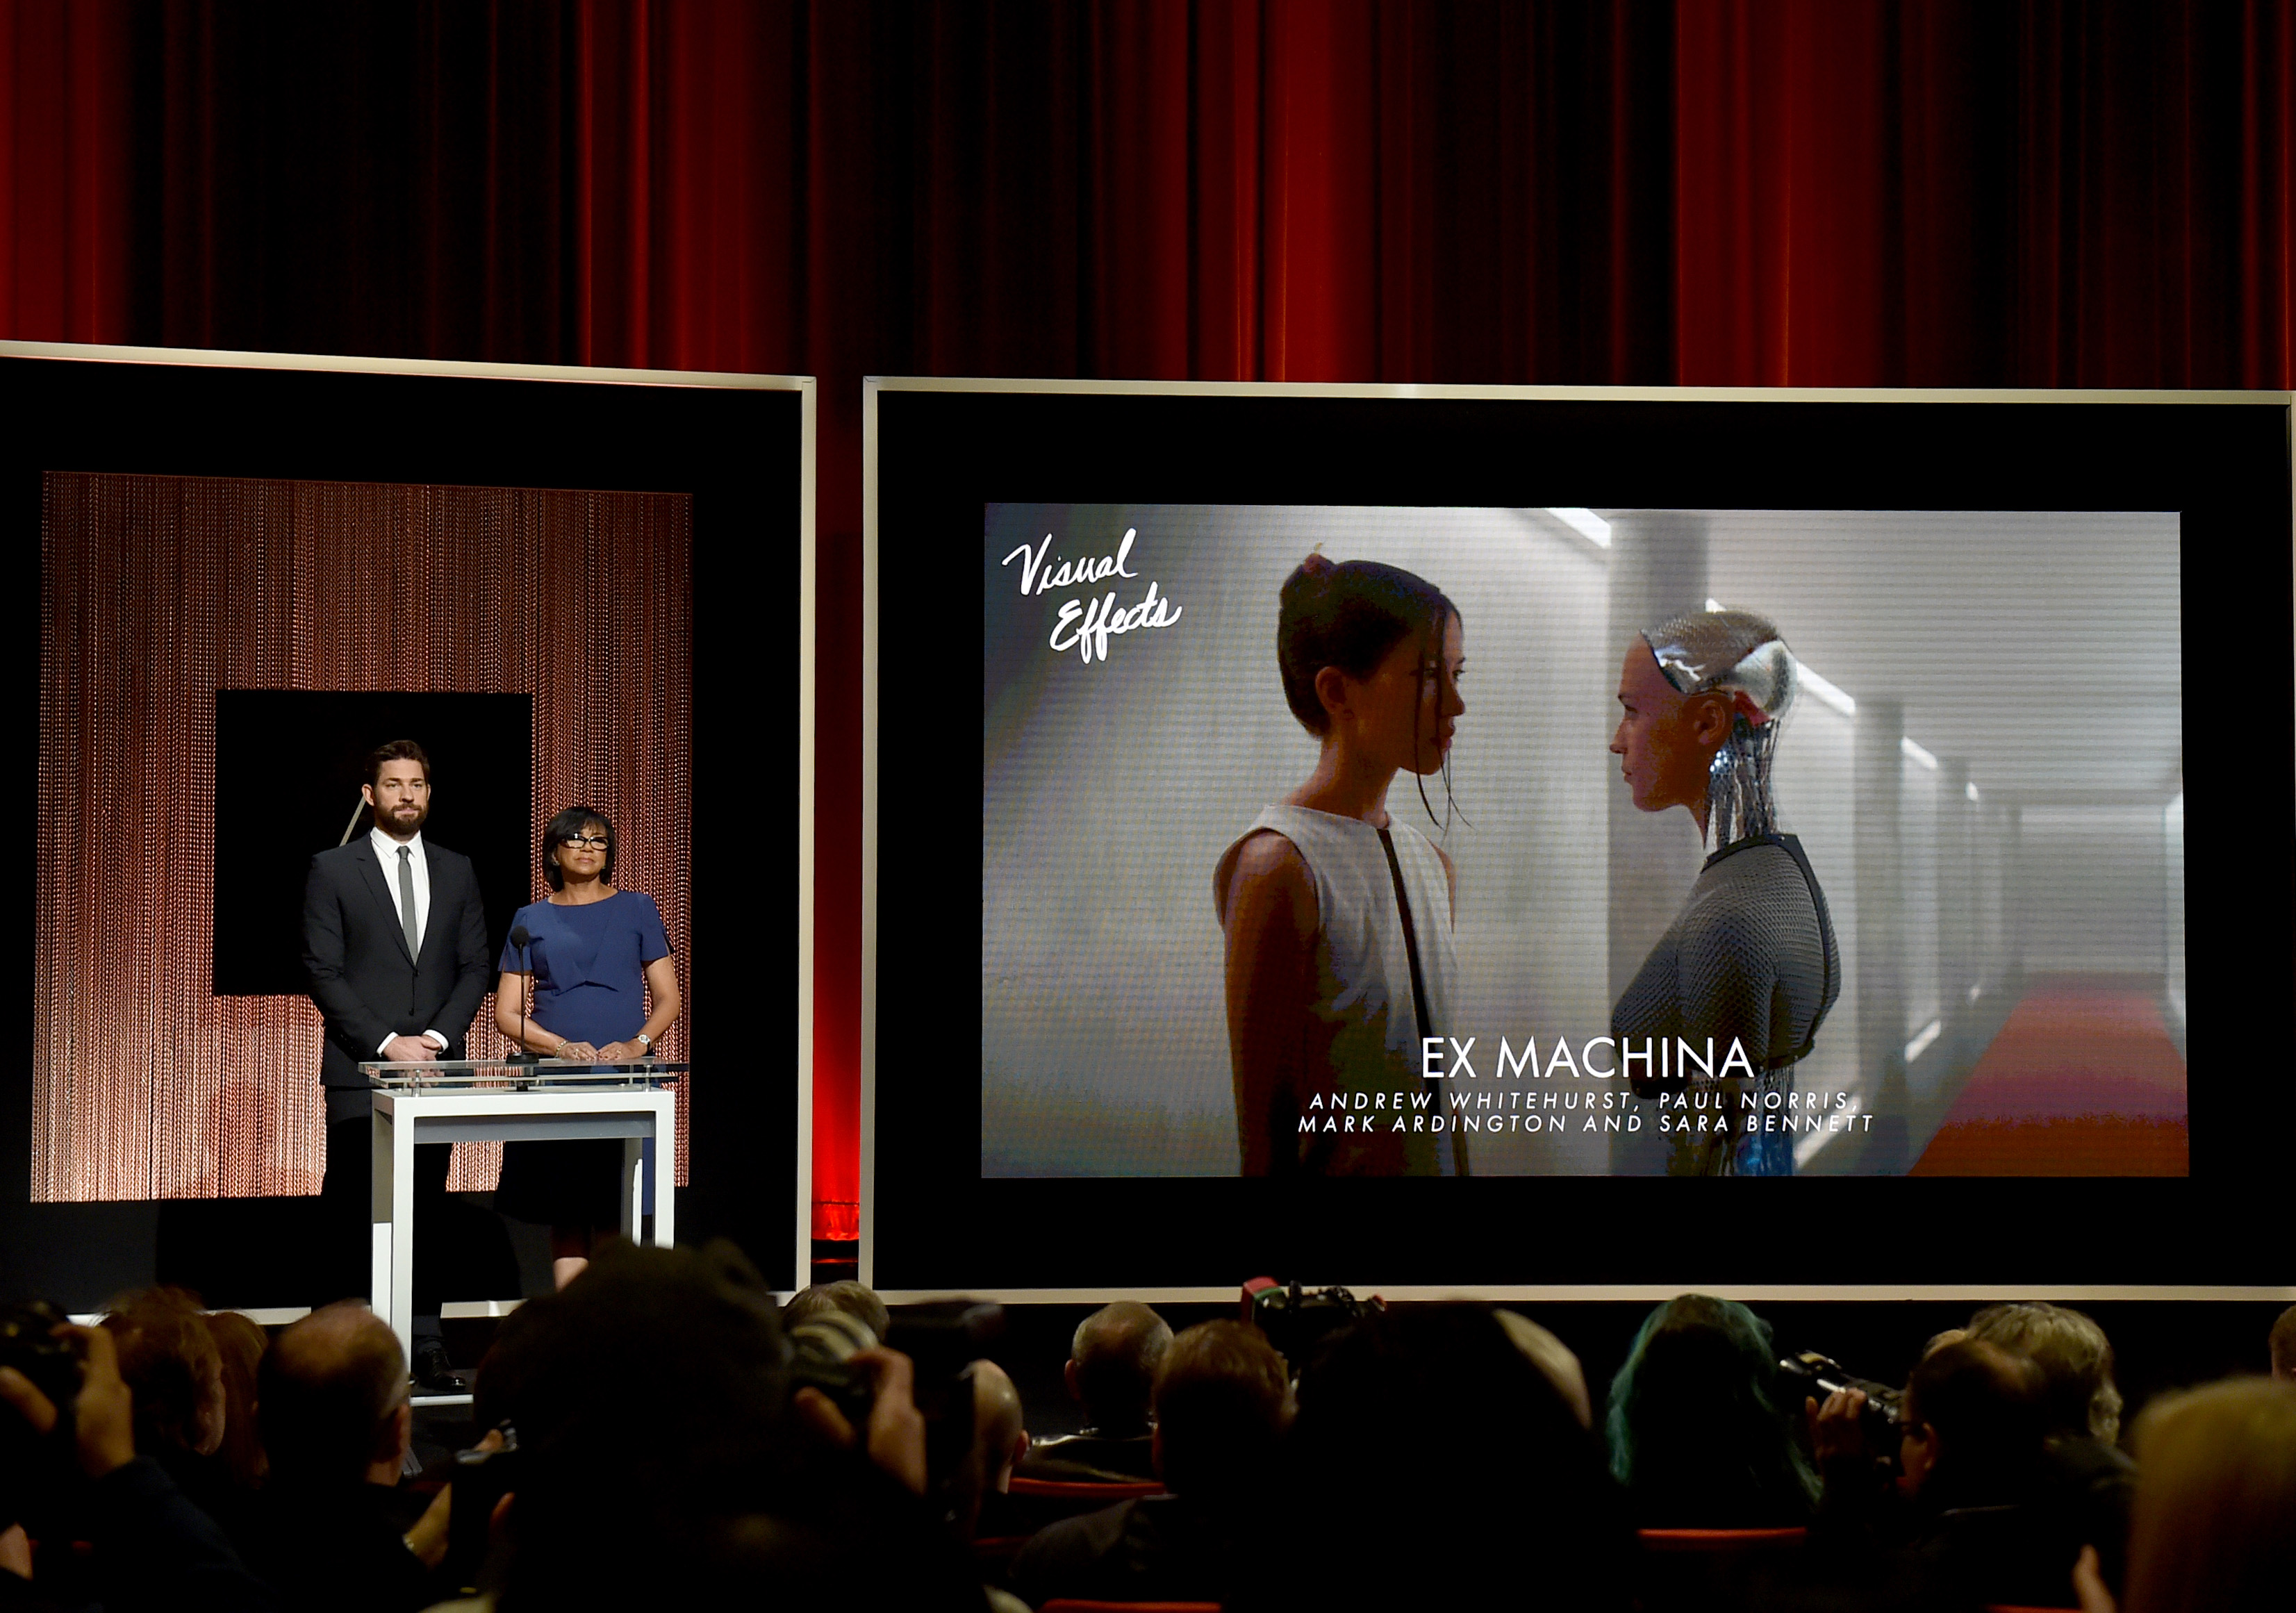 De film Ex Machina sleepte een Oscar in de wacht vanwege de prachtige visuele effecten. / Foto: Kevin Winter | Getty Images